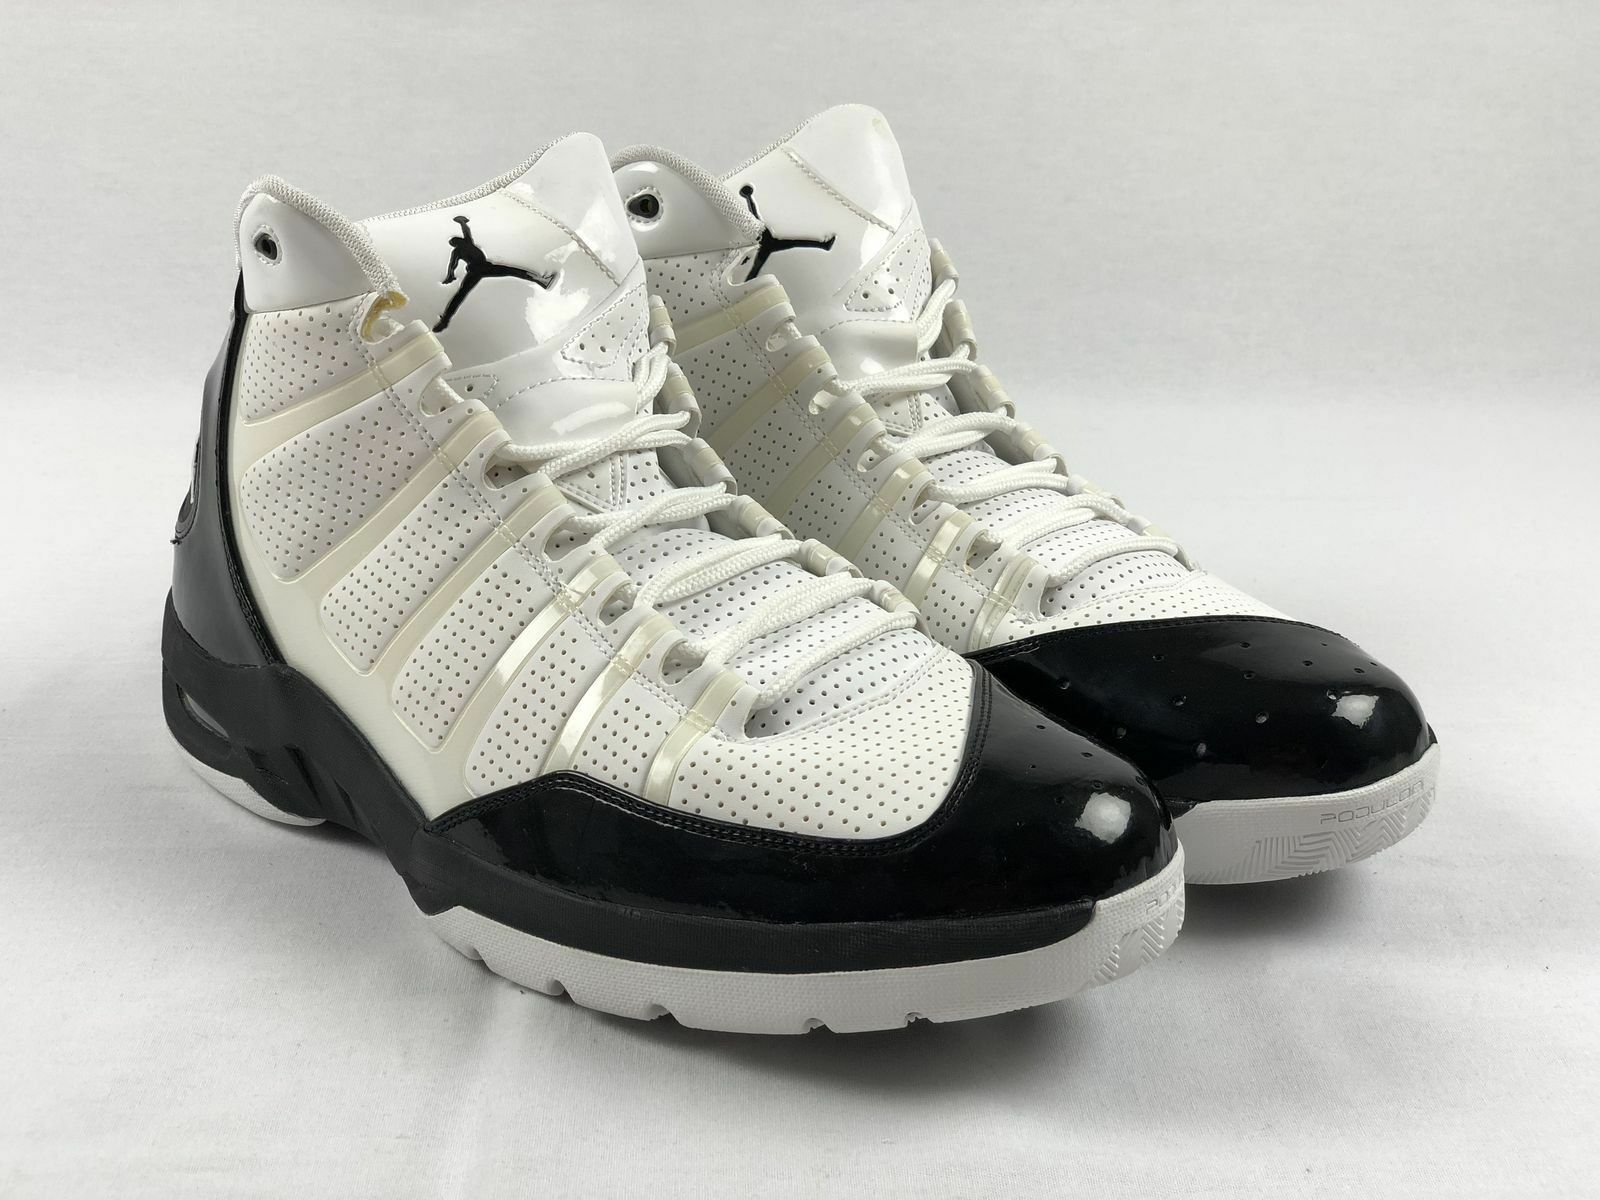 NEW Jordan Play in these F 9's - White/Black Basketball Shoes (Men's 16)